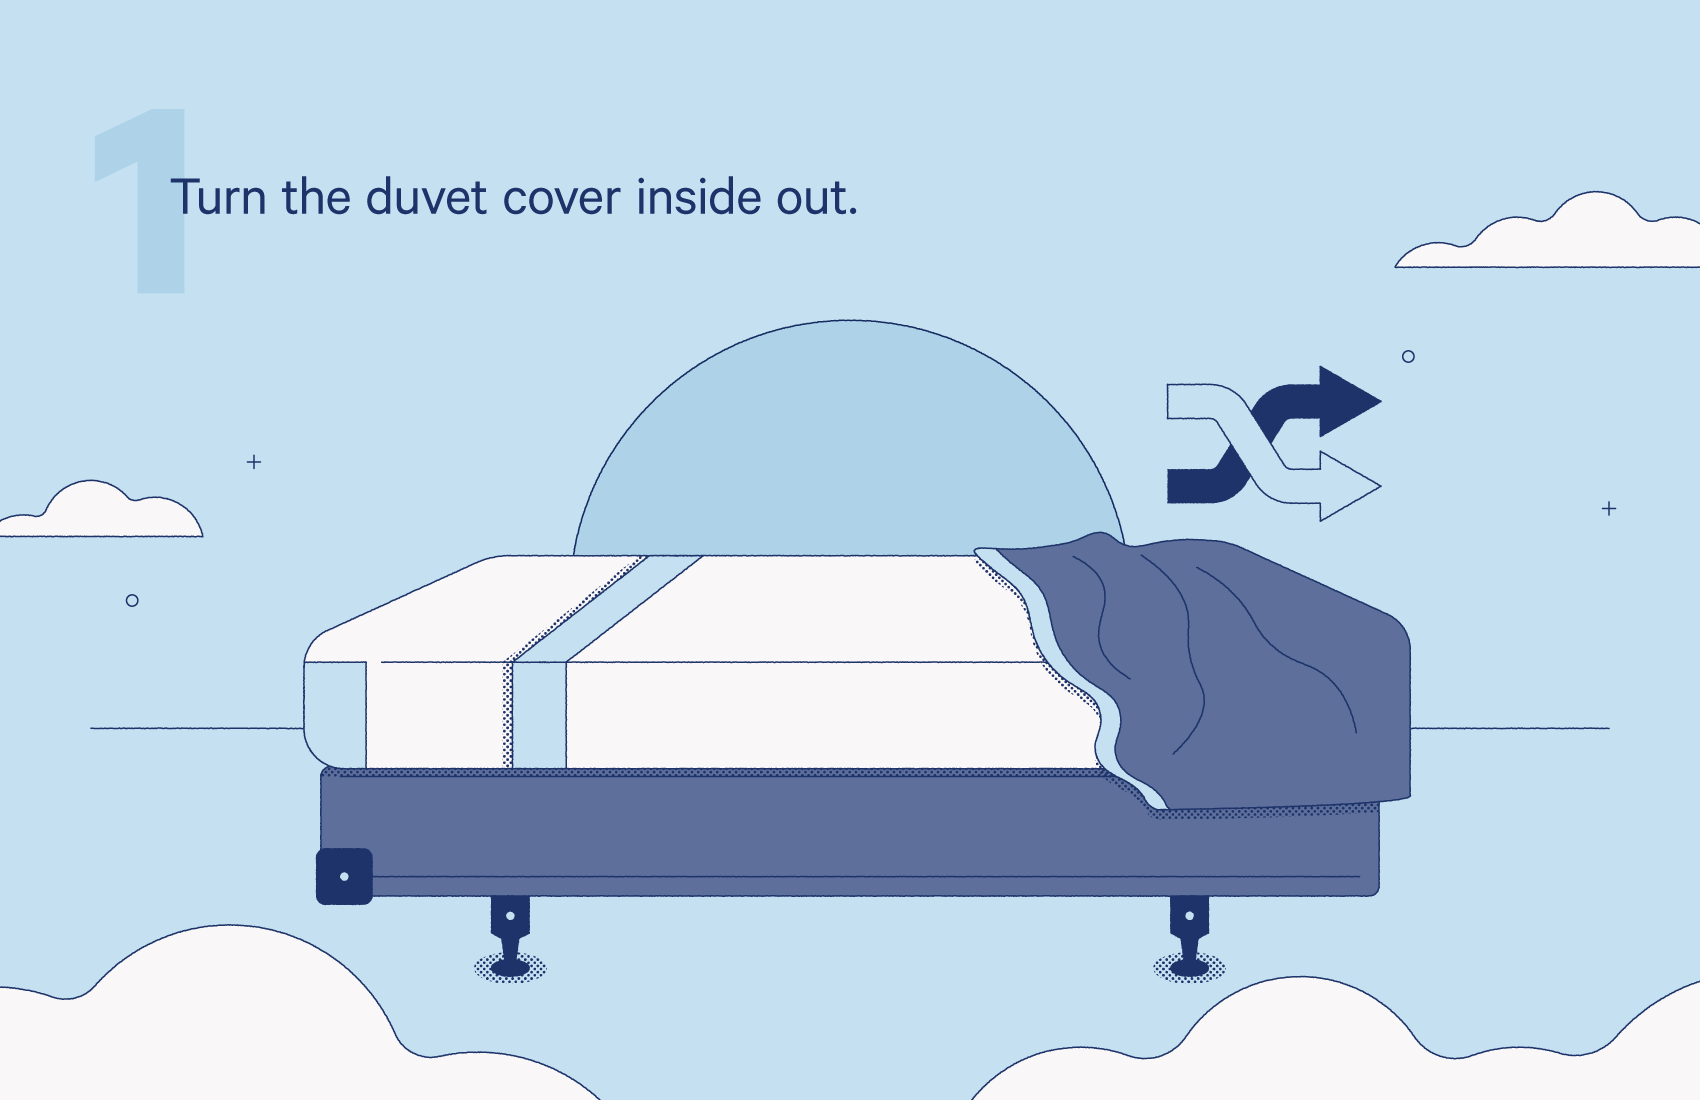 turn the duvet cover inside out